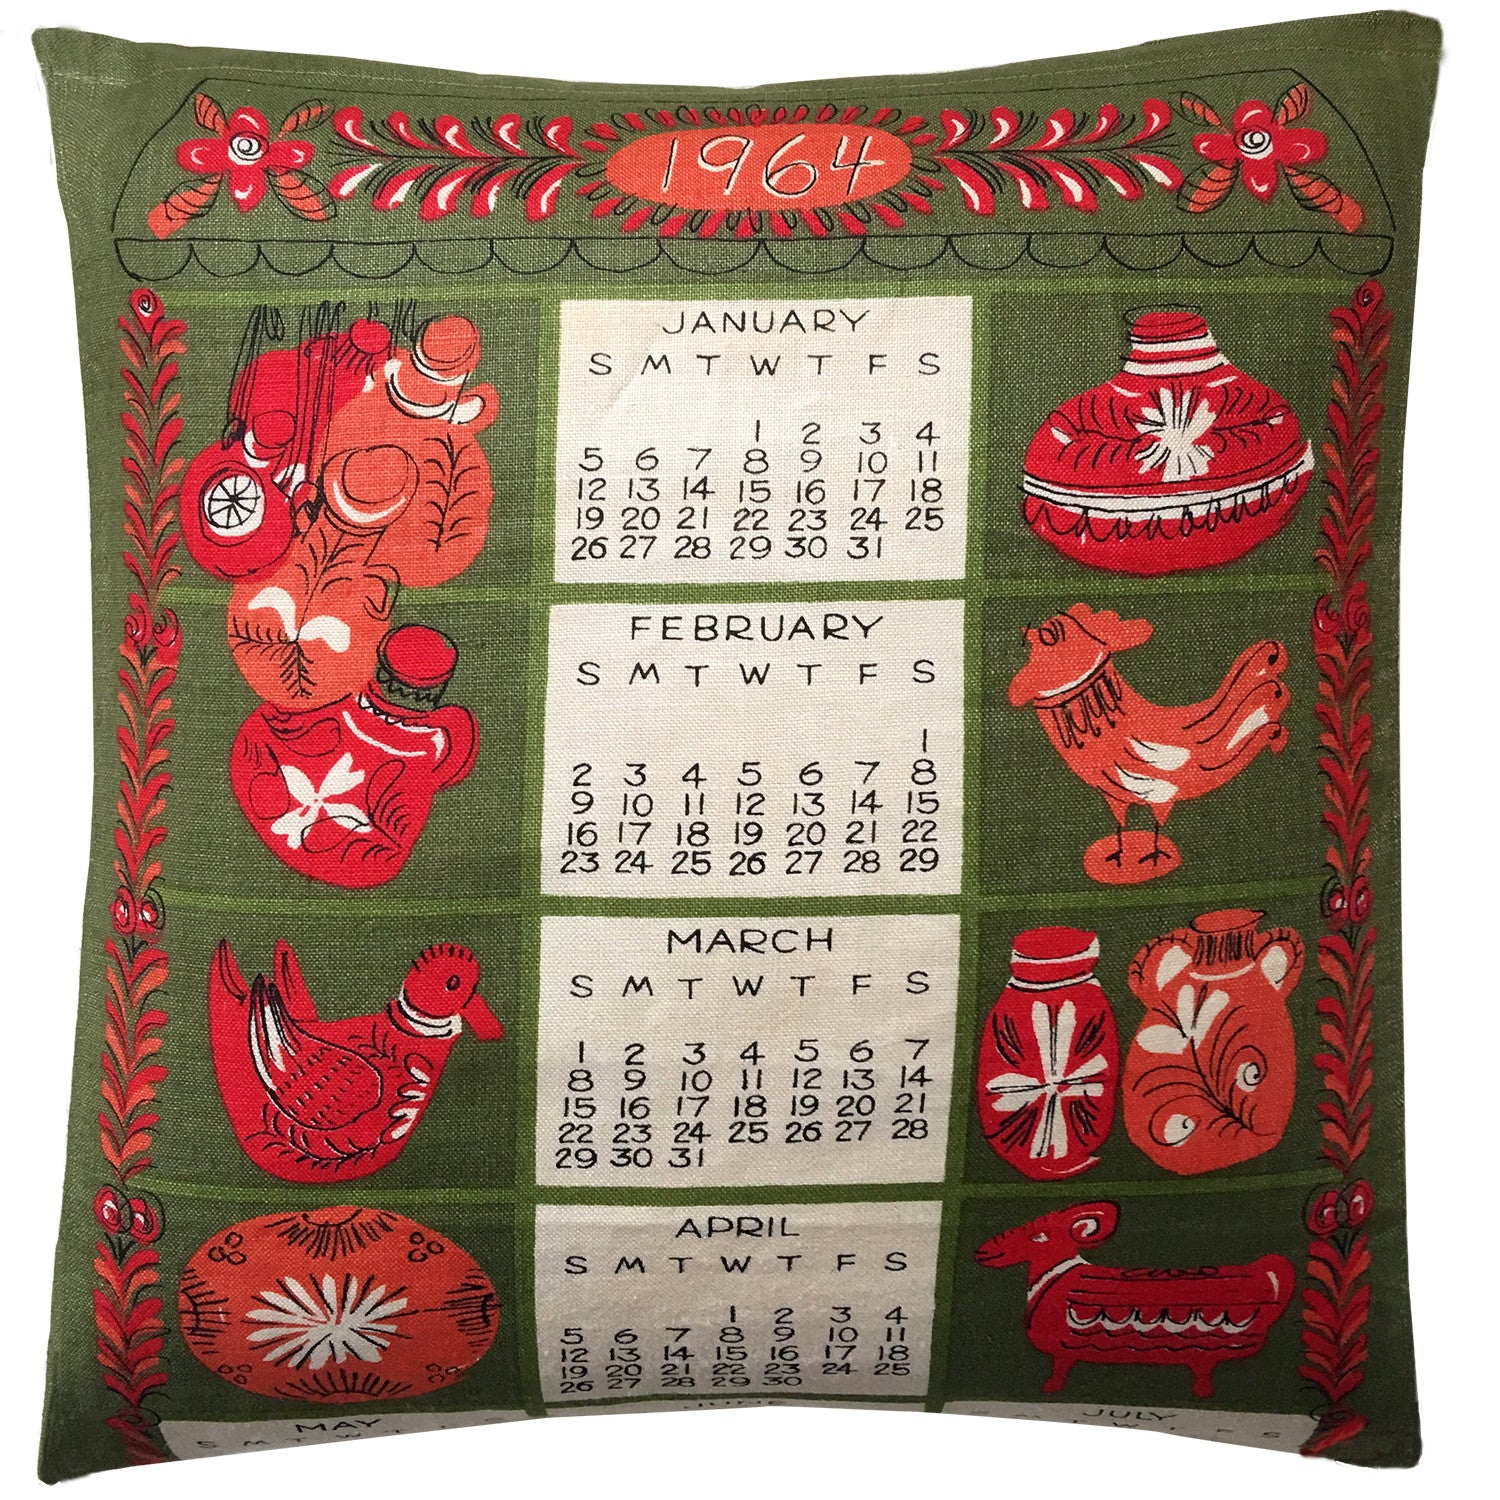 1964 Vera Neumann illustrated teatowel cushion cover